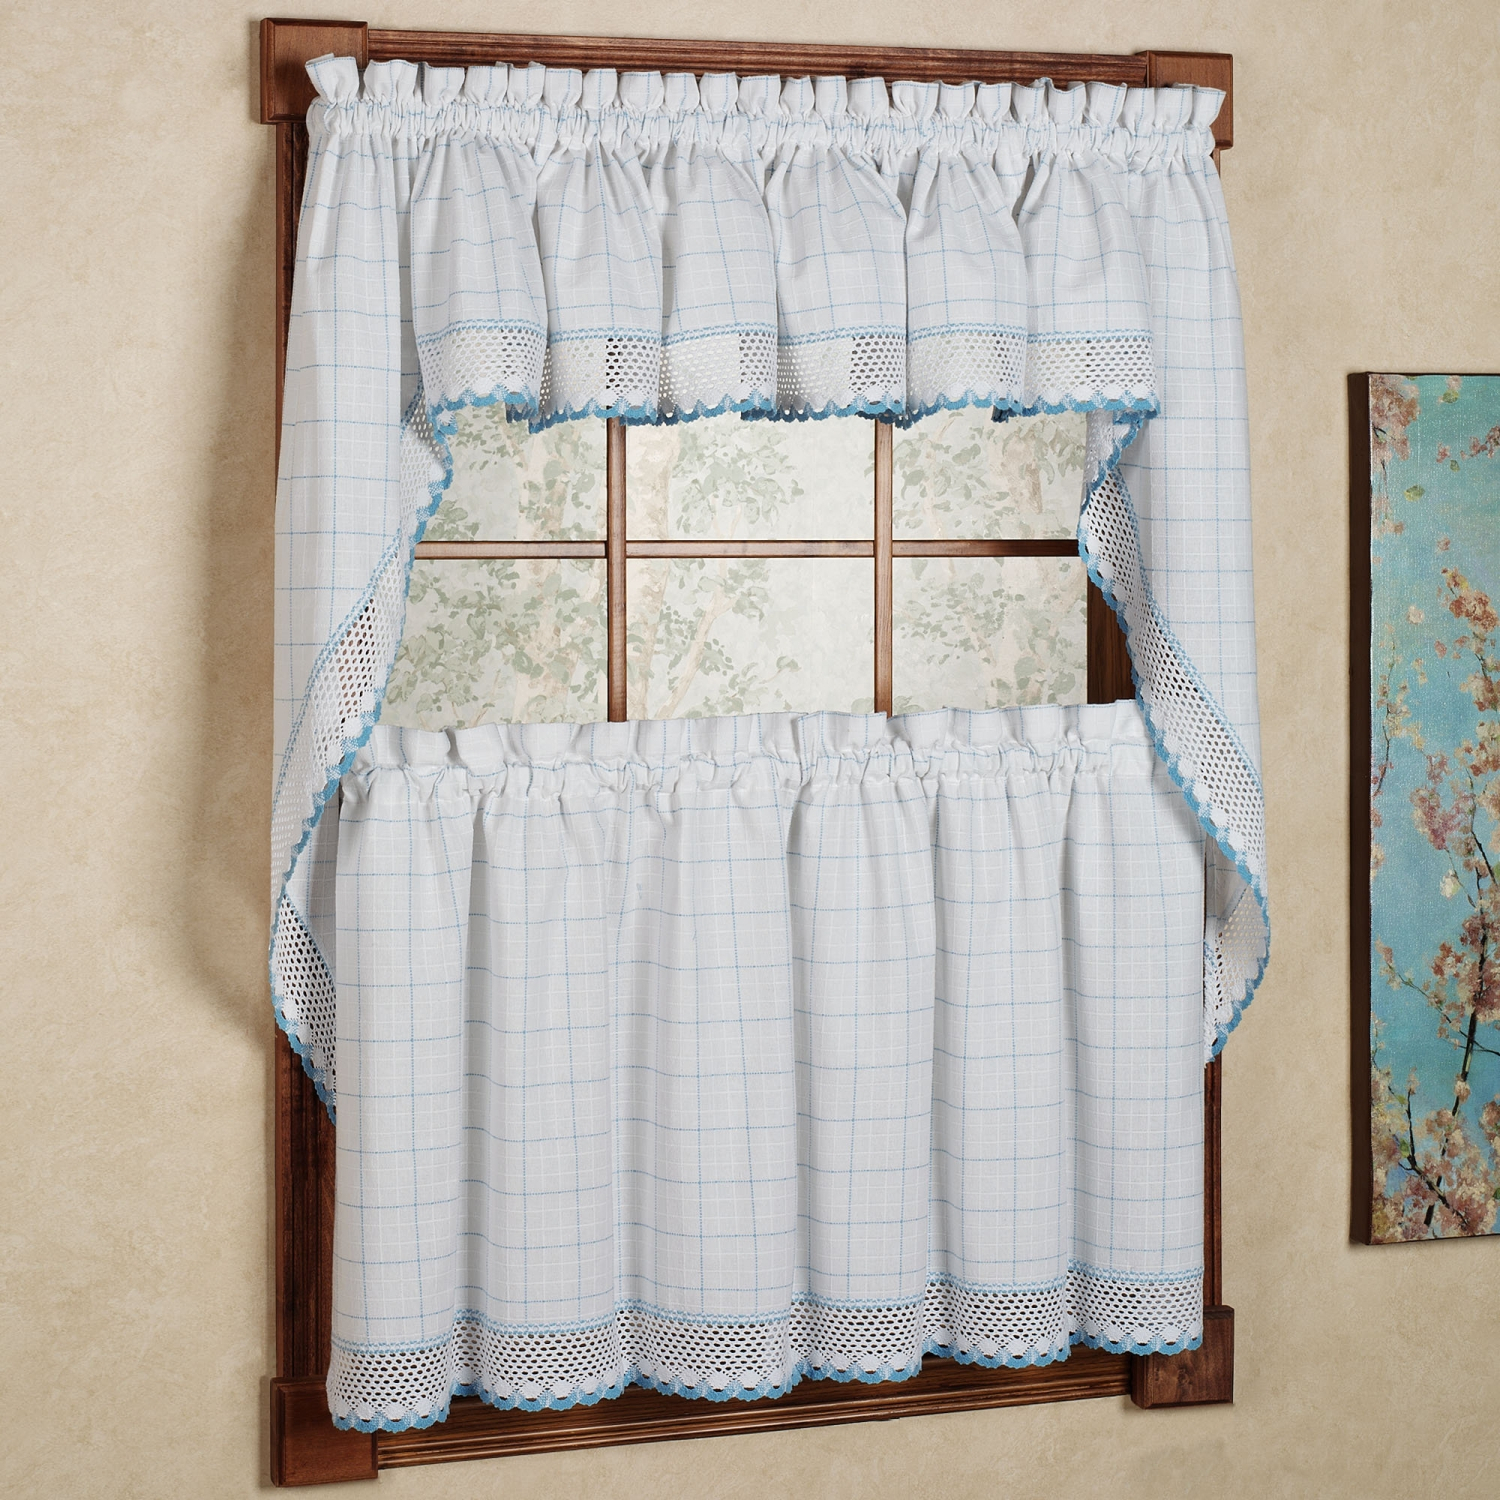 Details About Adirondack Cotton Kitchen Window Curtains – White/blue – Tiers, Valance Or Swag Throughout Cotton Classic Toast Window Pane Pattern And Crotchet Trim Tiers (View 8 of 20)